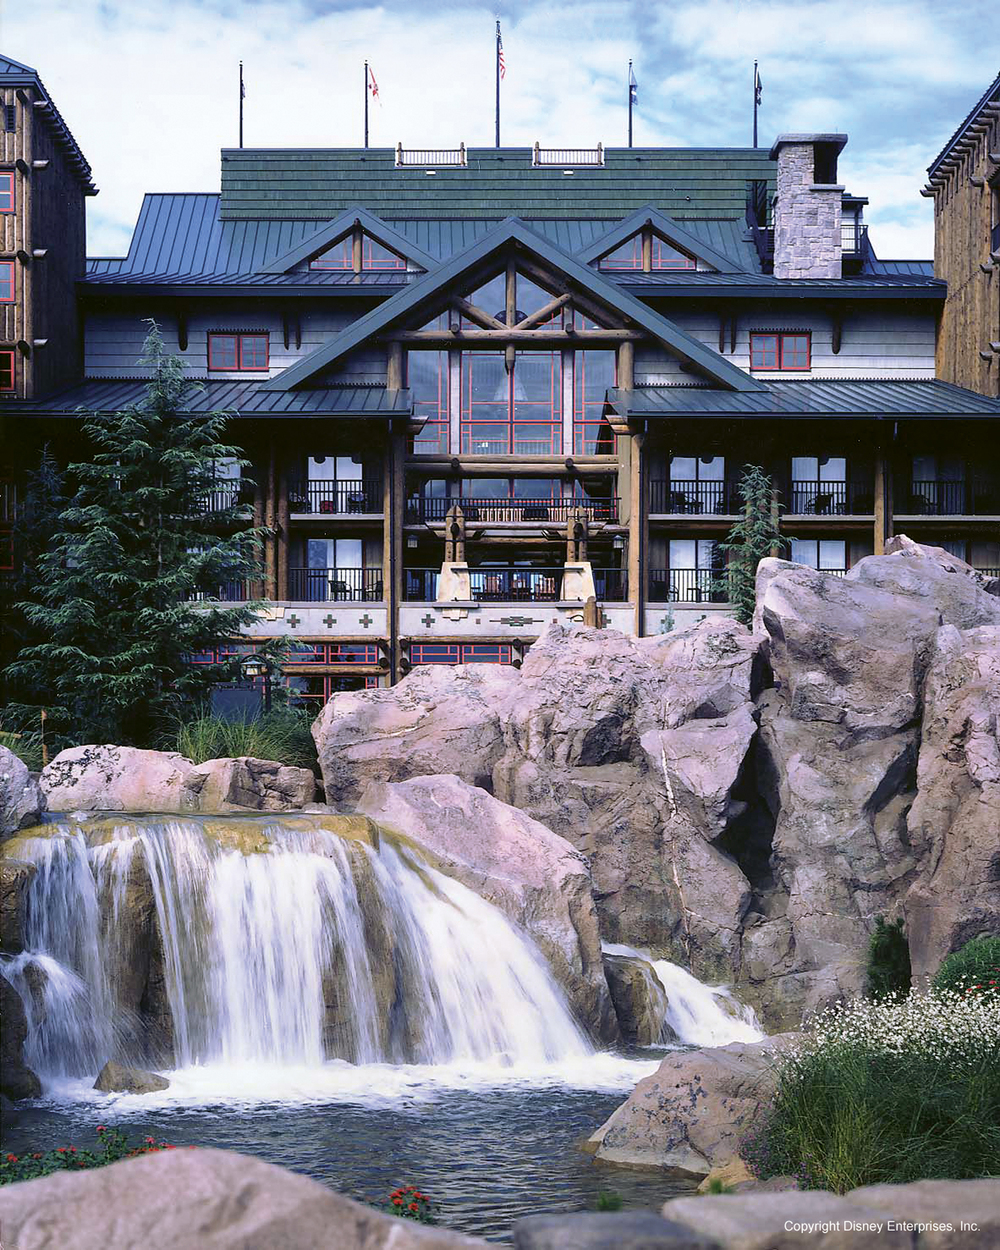 disney_wilderness_lodge_anaheim_florida_water_waterfall.jpg